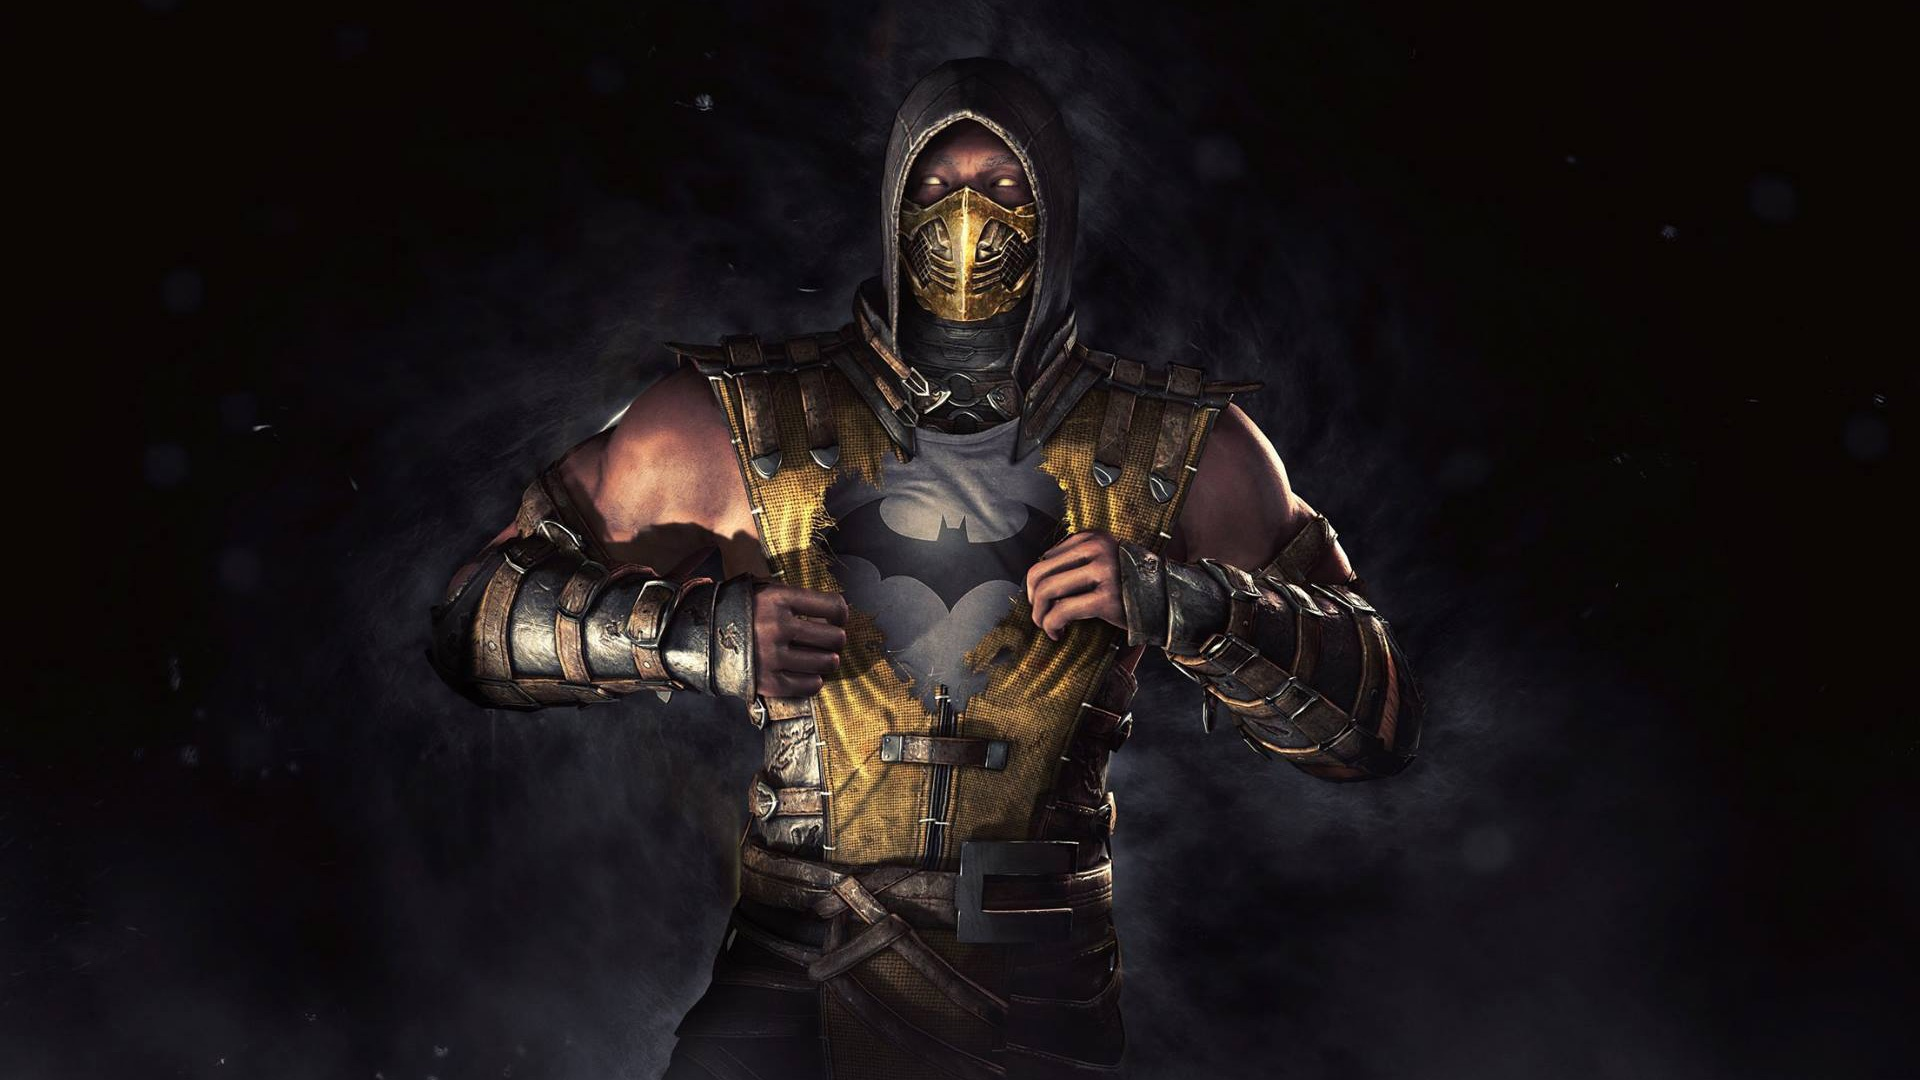 Batman Mortal Kombat X Wallpapers In Jpg Format For Free Download